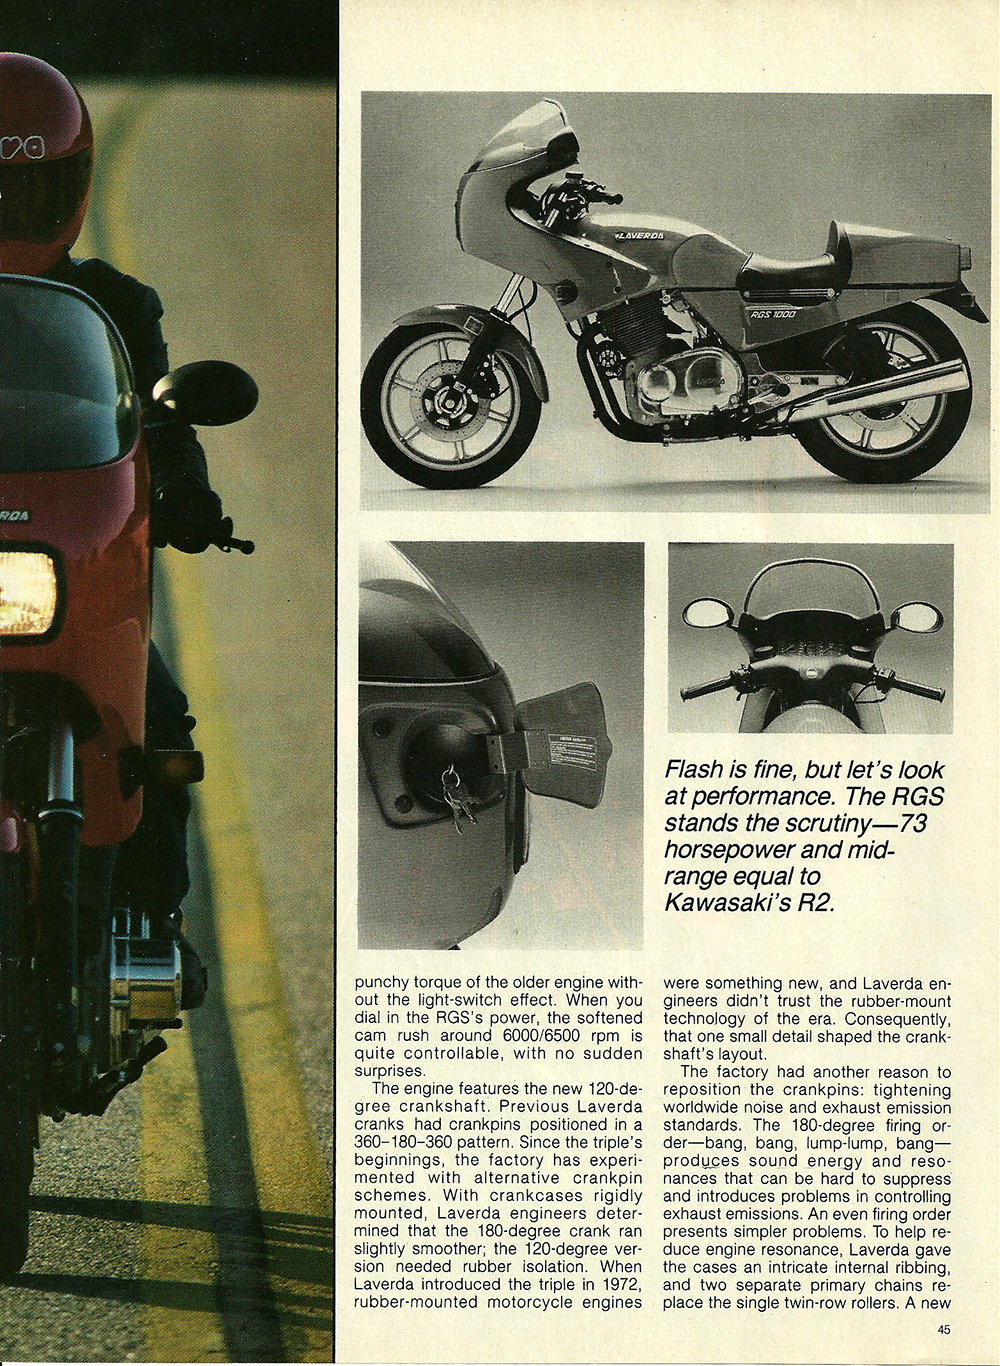 1984 Laverda RGS 1000 road test 4.jpg